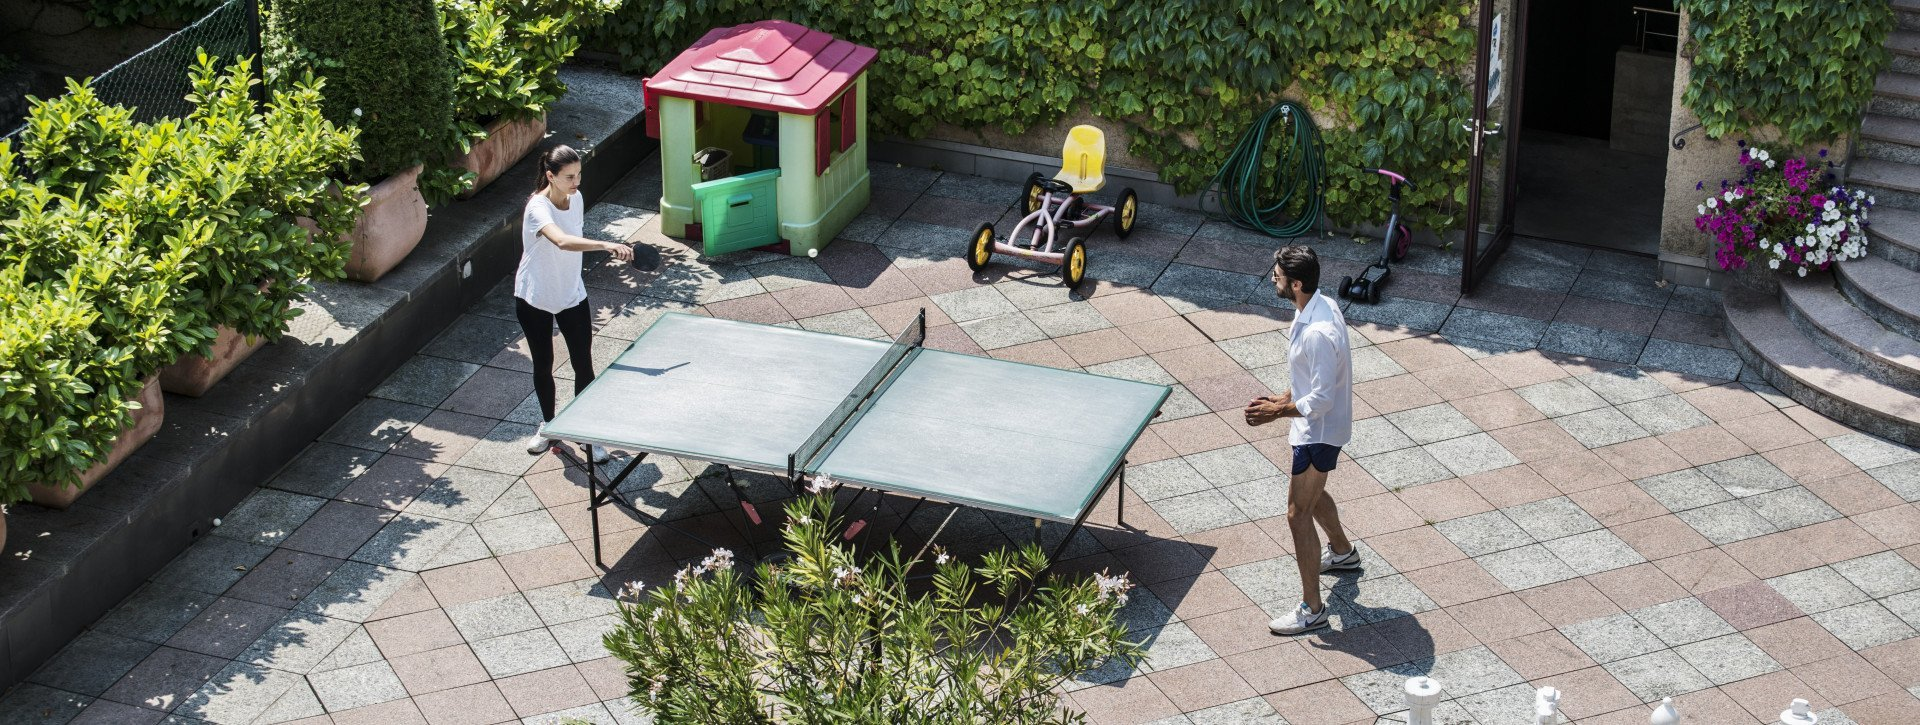 A couple is playing ping pong in the hotels garden